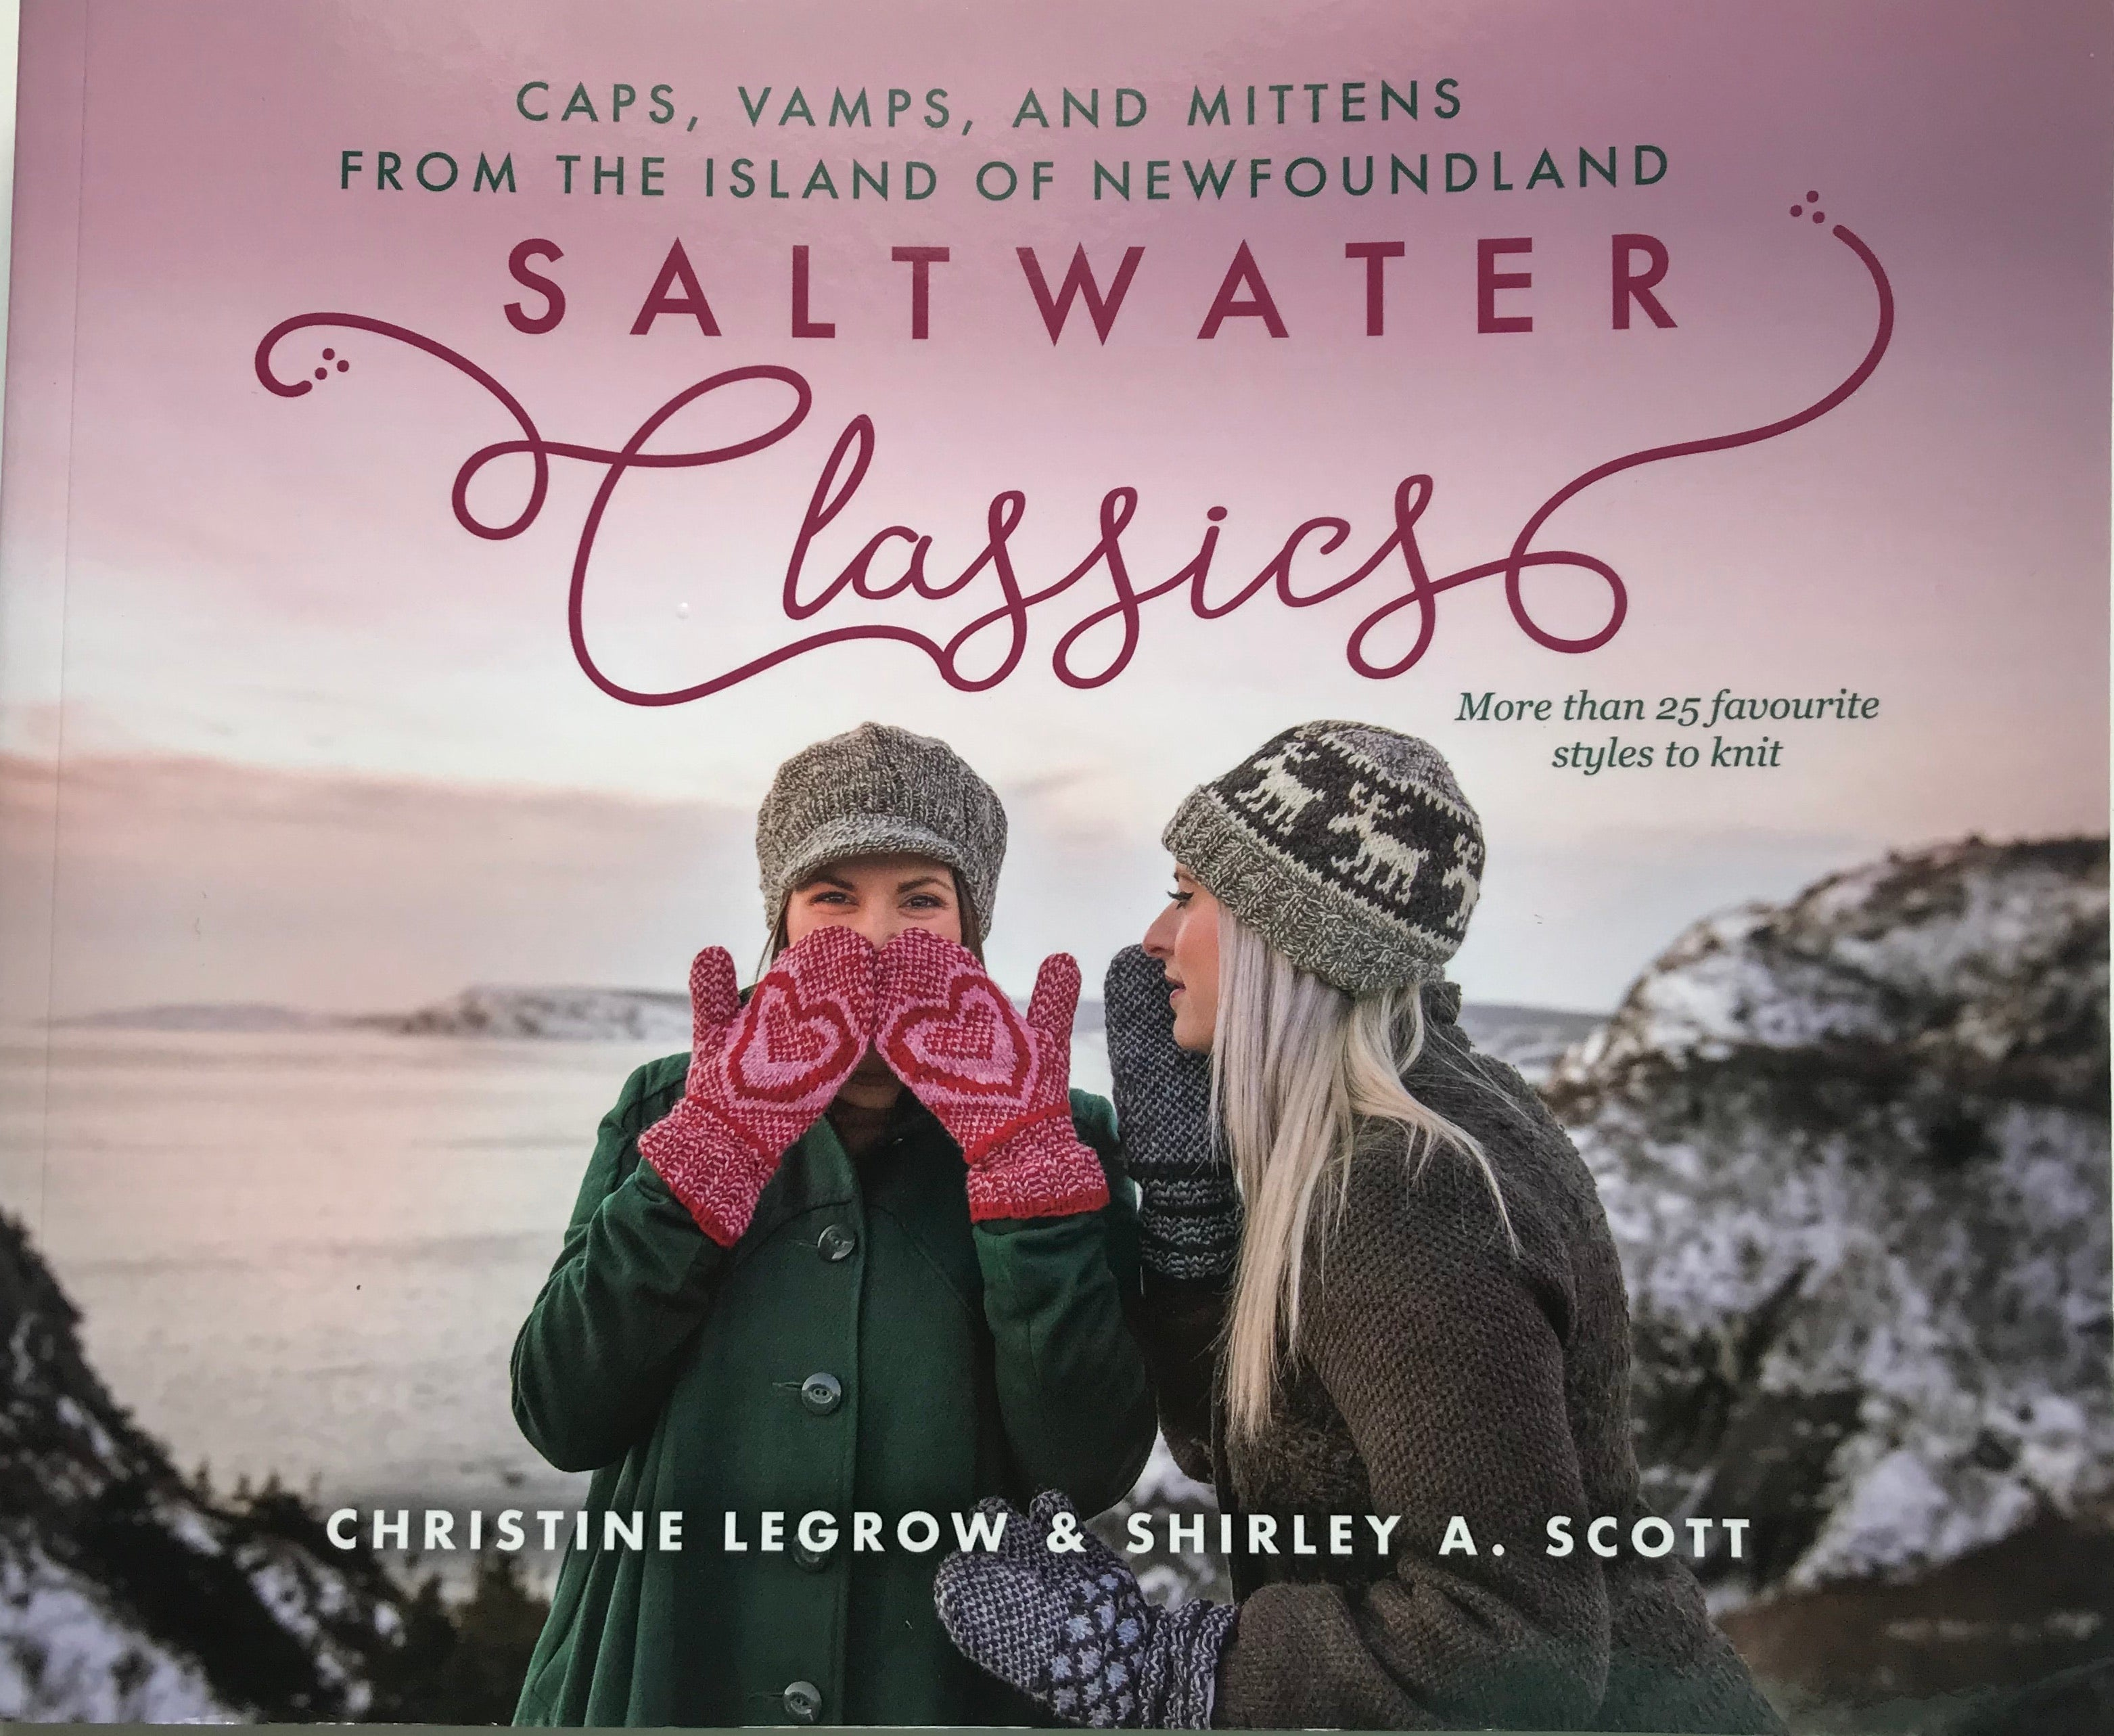 Saltwater Classics by Christine LeGrow and Shirley A. Scott published by Boulder Books